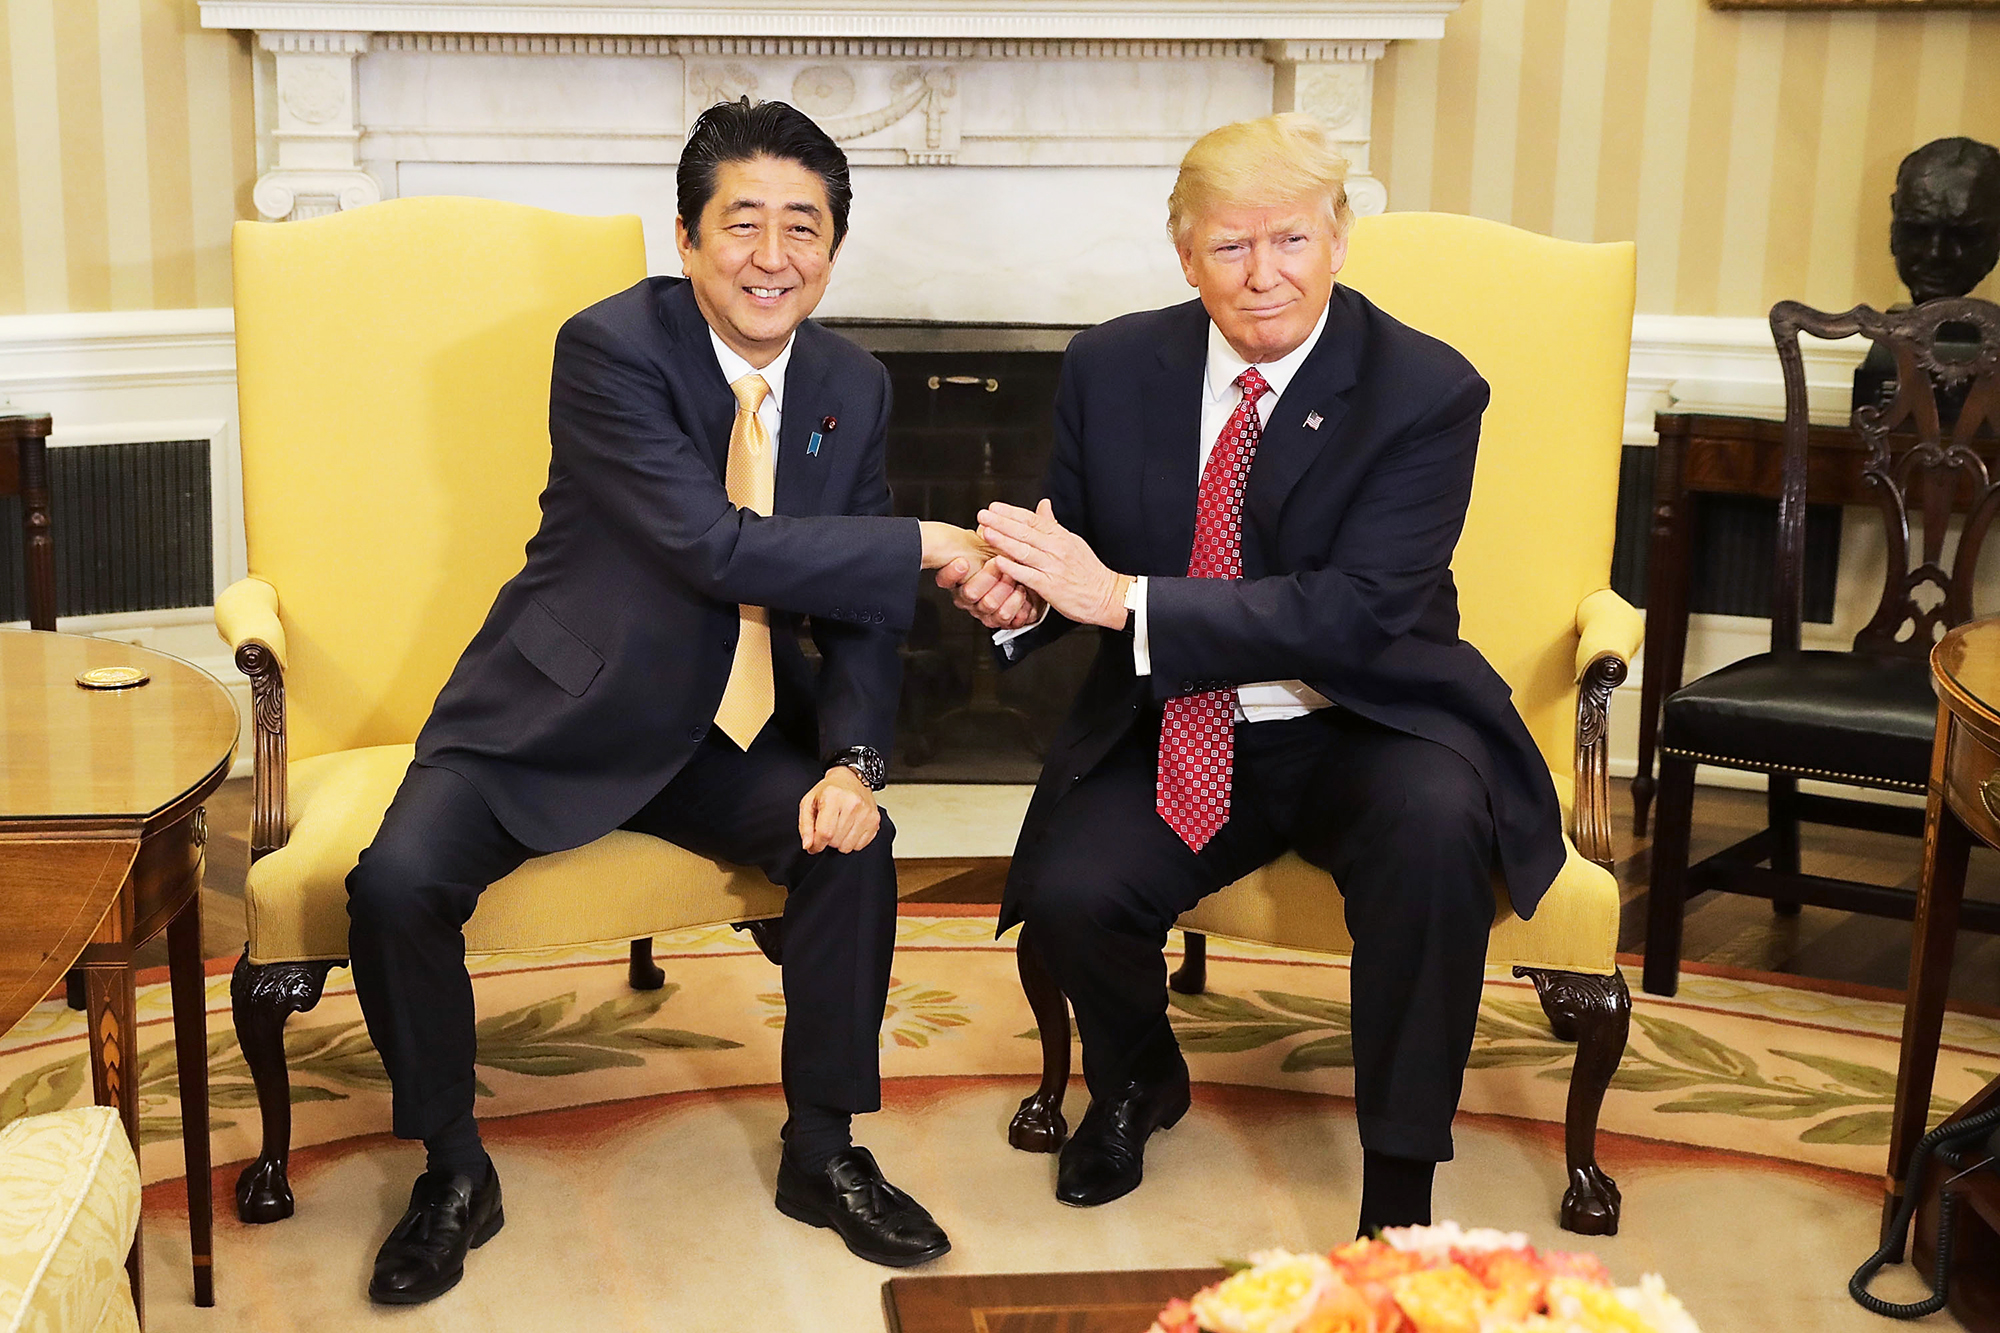 Donald Trump shakes Japanese Prime Minister Shinzo Abe's hand for 19 seconds at the White House in Washington, D.C., on Feb. 10, 2017.